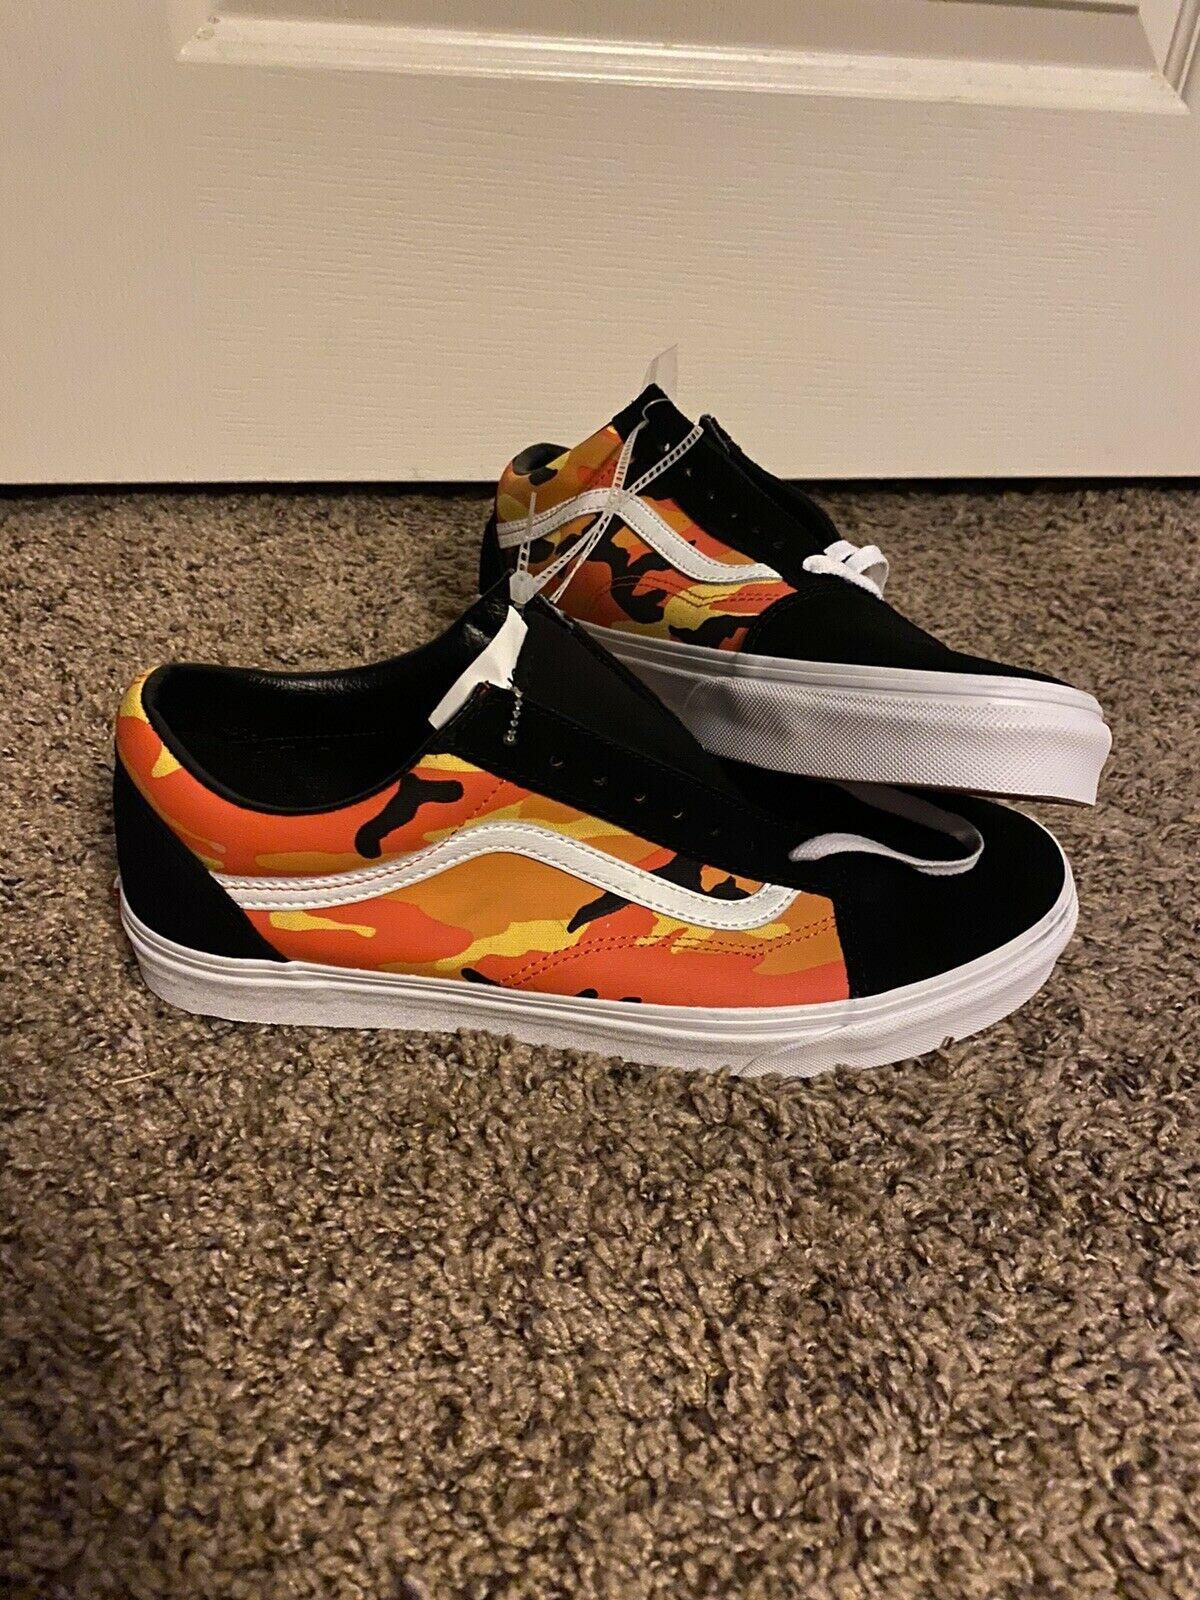 Vans Old Skool Flame Sneakers Men Size 11 Canvas Skater Shoes Casual